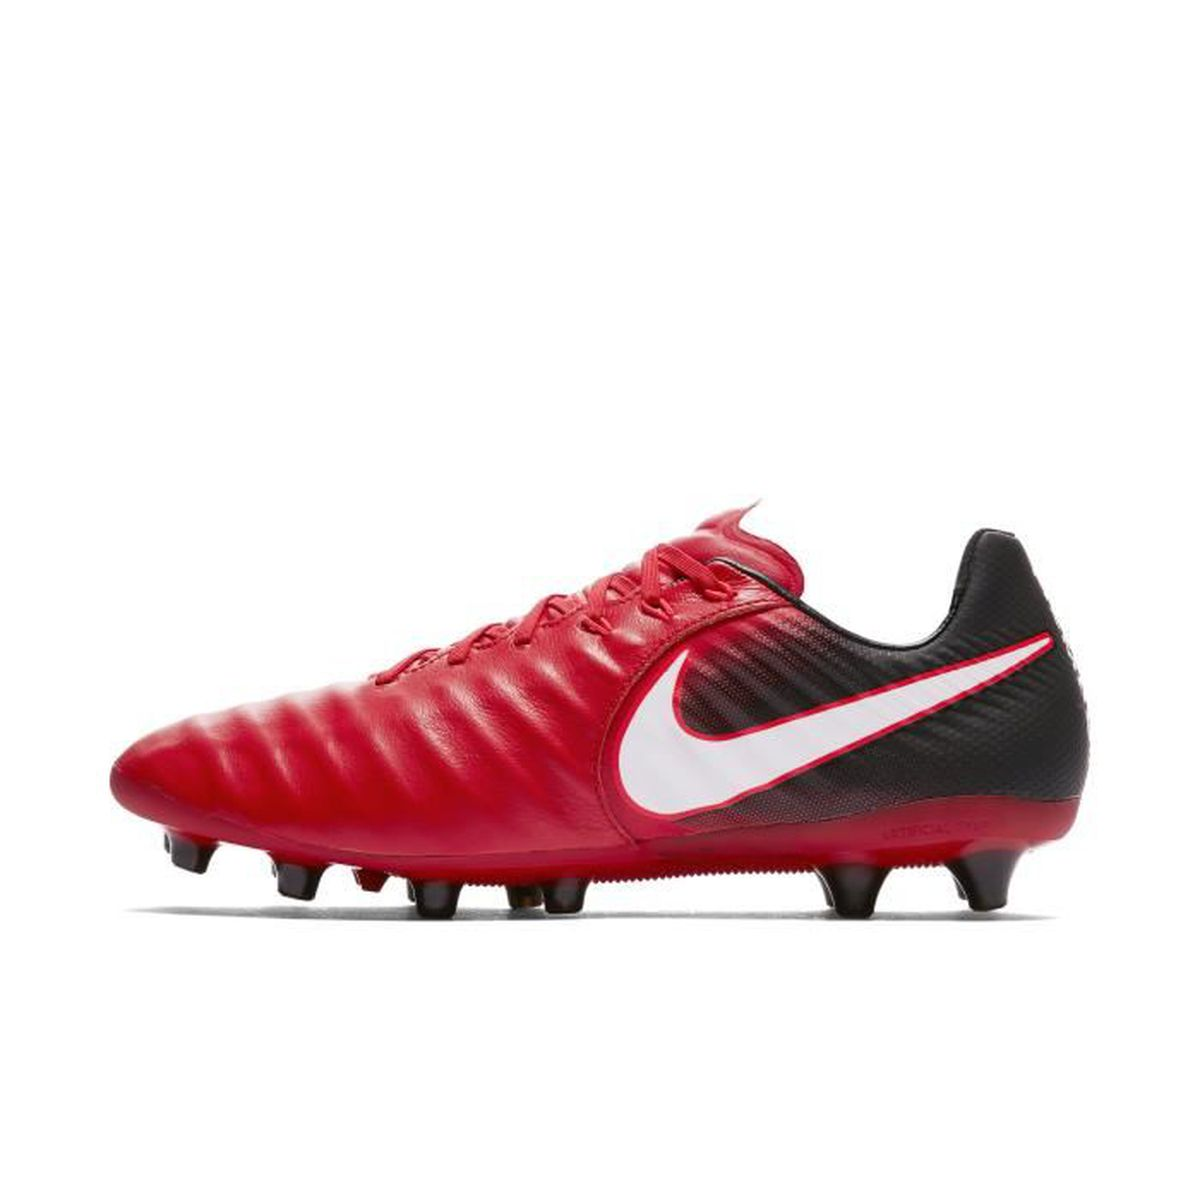 official photos 05b90 ddef9 CHAUSSURES DE FOOTBALL Nike Tiempo Legacy III AG-Pro, Sol ferme, Adultes,